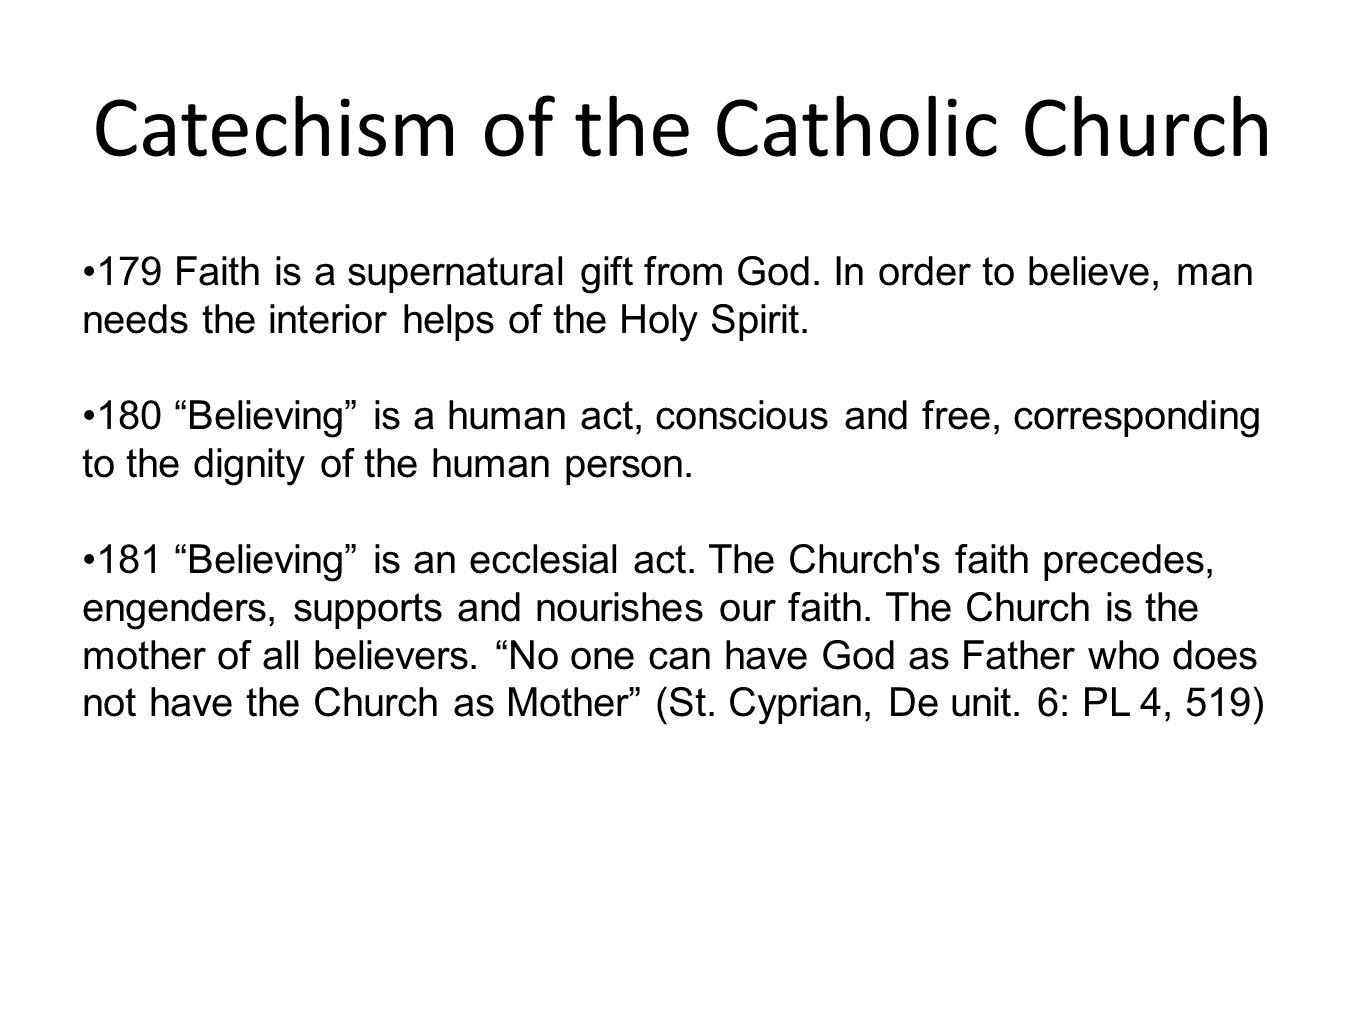 Catechism of the Catholic Church 179 Faith is a supernatural gift from God. In order to believe, man needs the interior helps of the Holy Spirit. 180